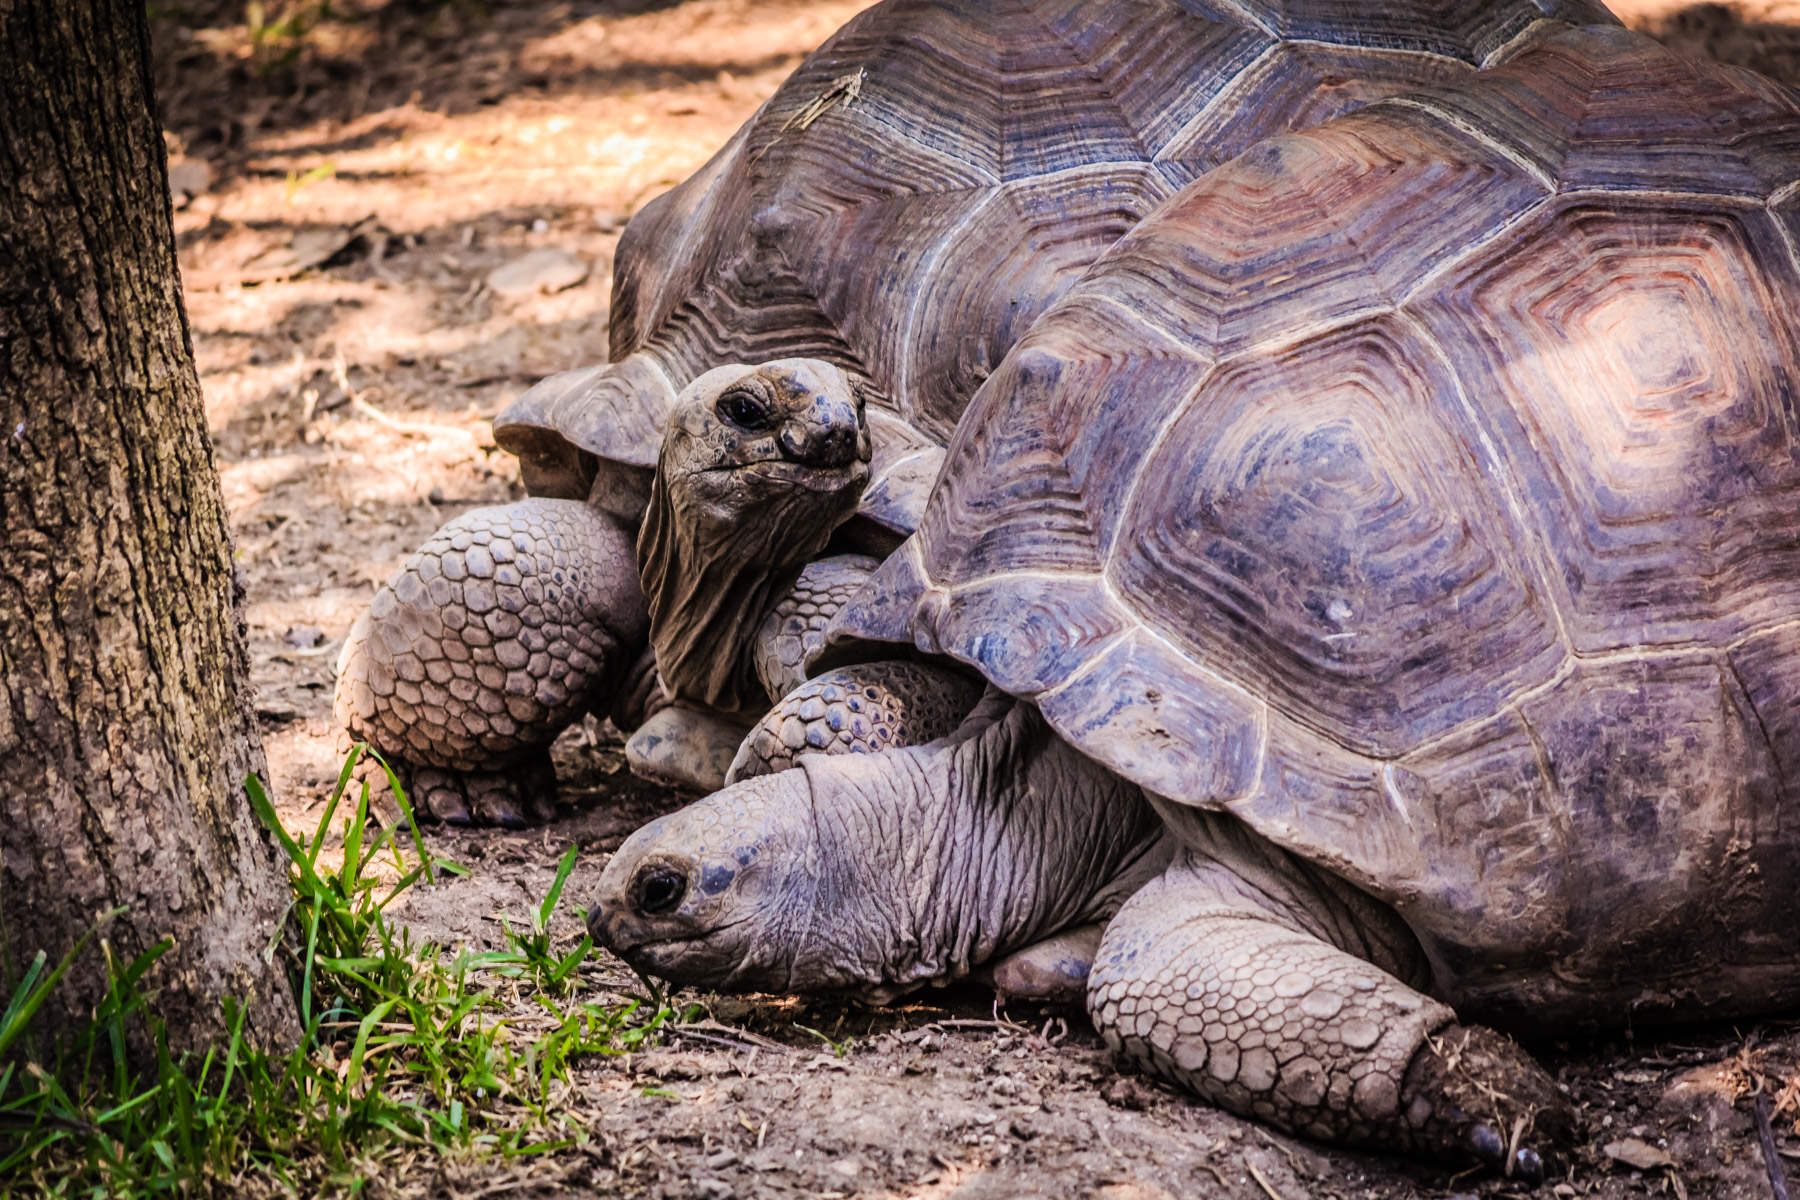 A pair of giant tortoises at the Dallas Zoo.